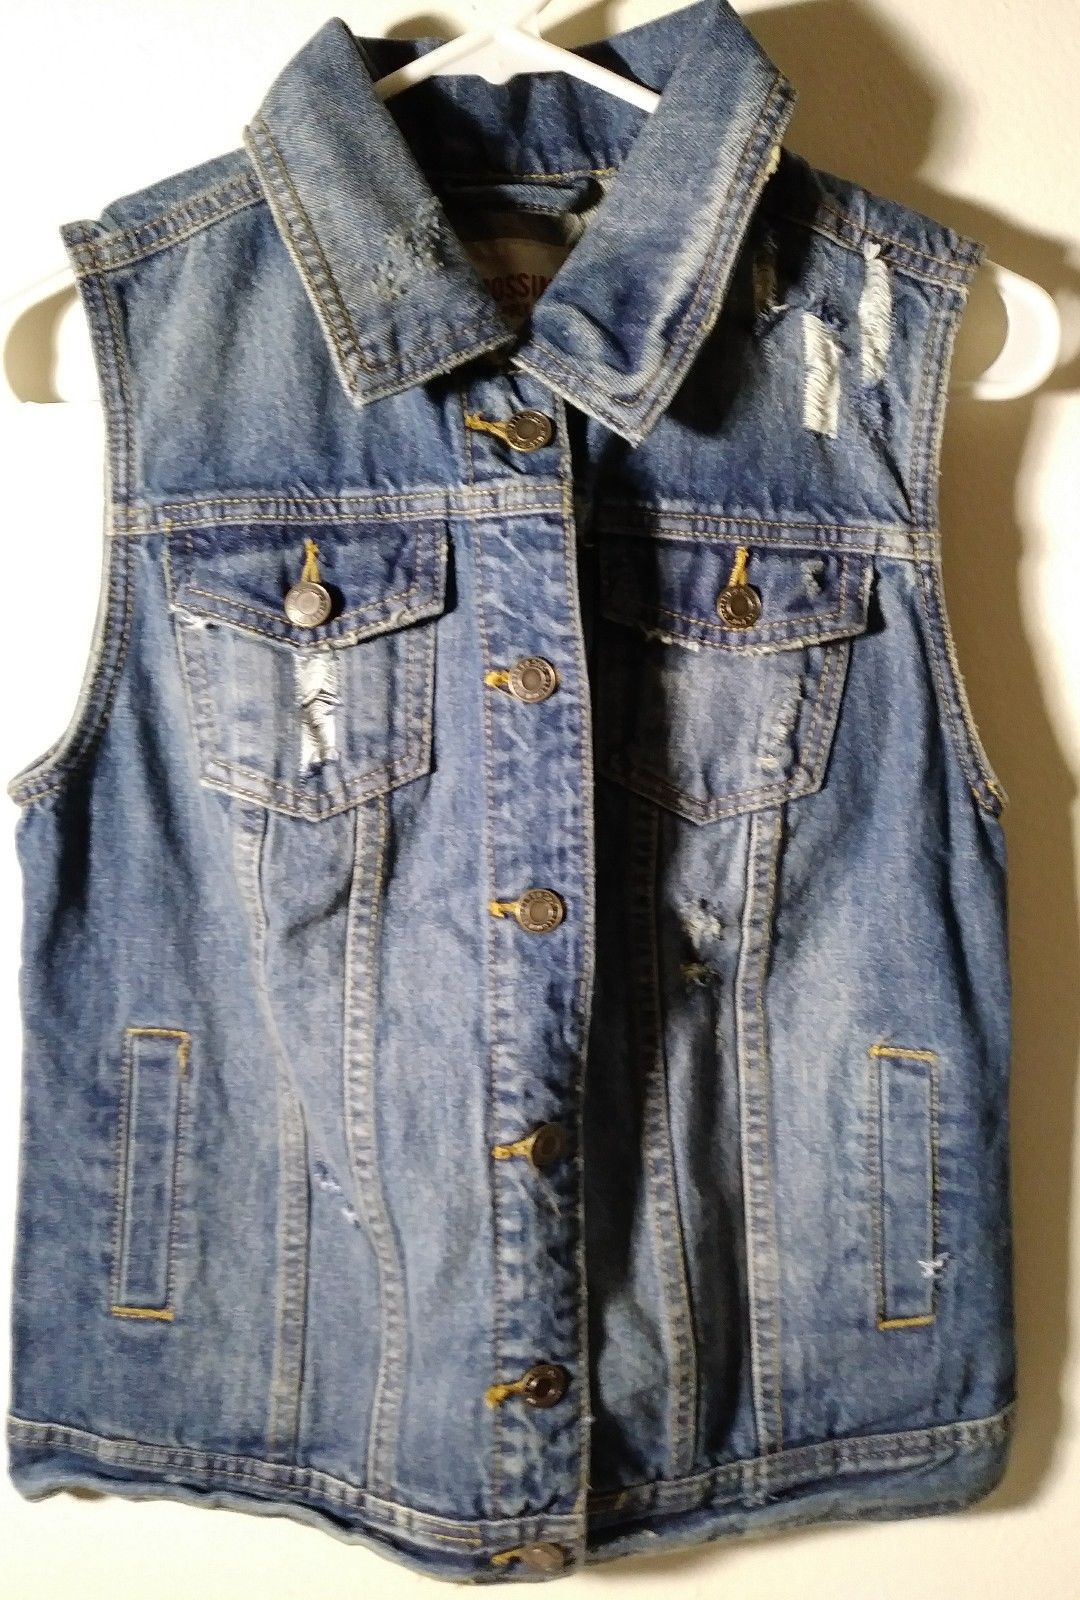 62d3d7a6c9 S l1600. S l1600. Previous. Mossimo Supply Co Juniors Jean Jacket Denim  Sleeveless ...